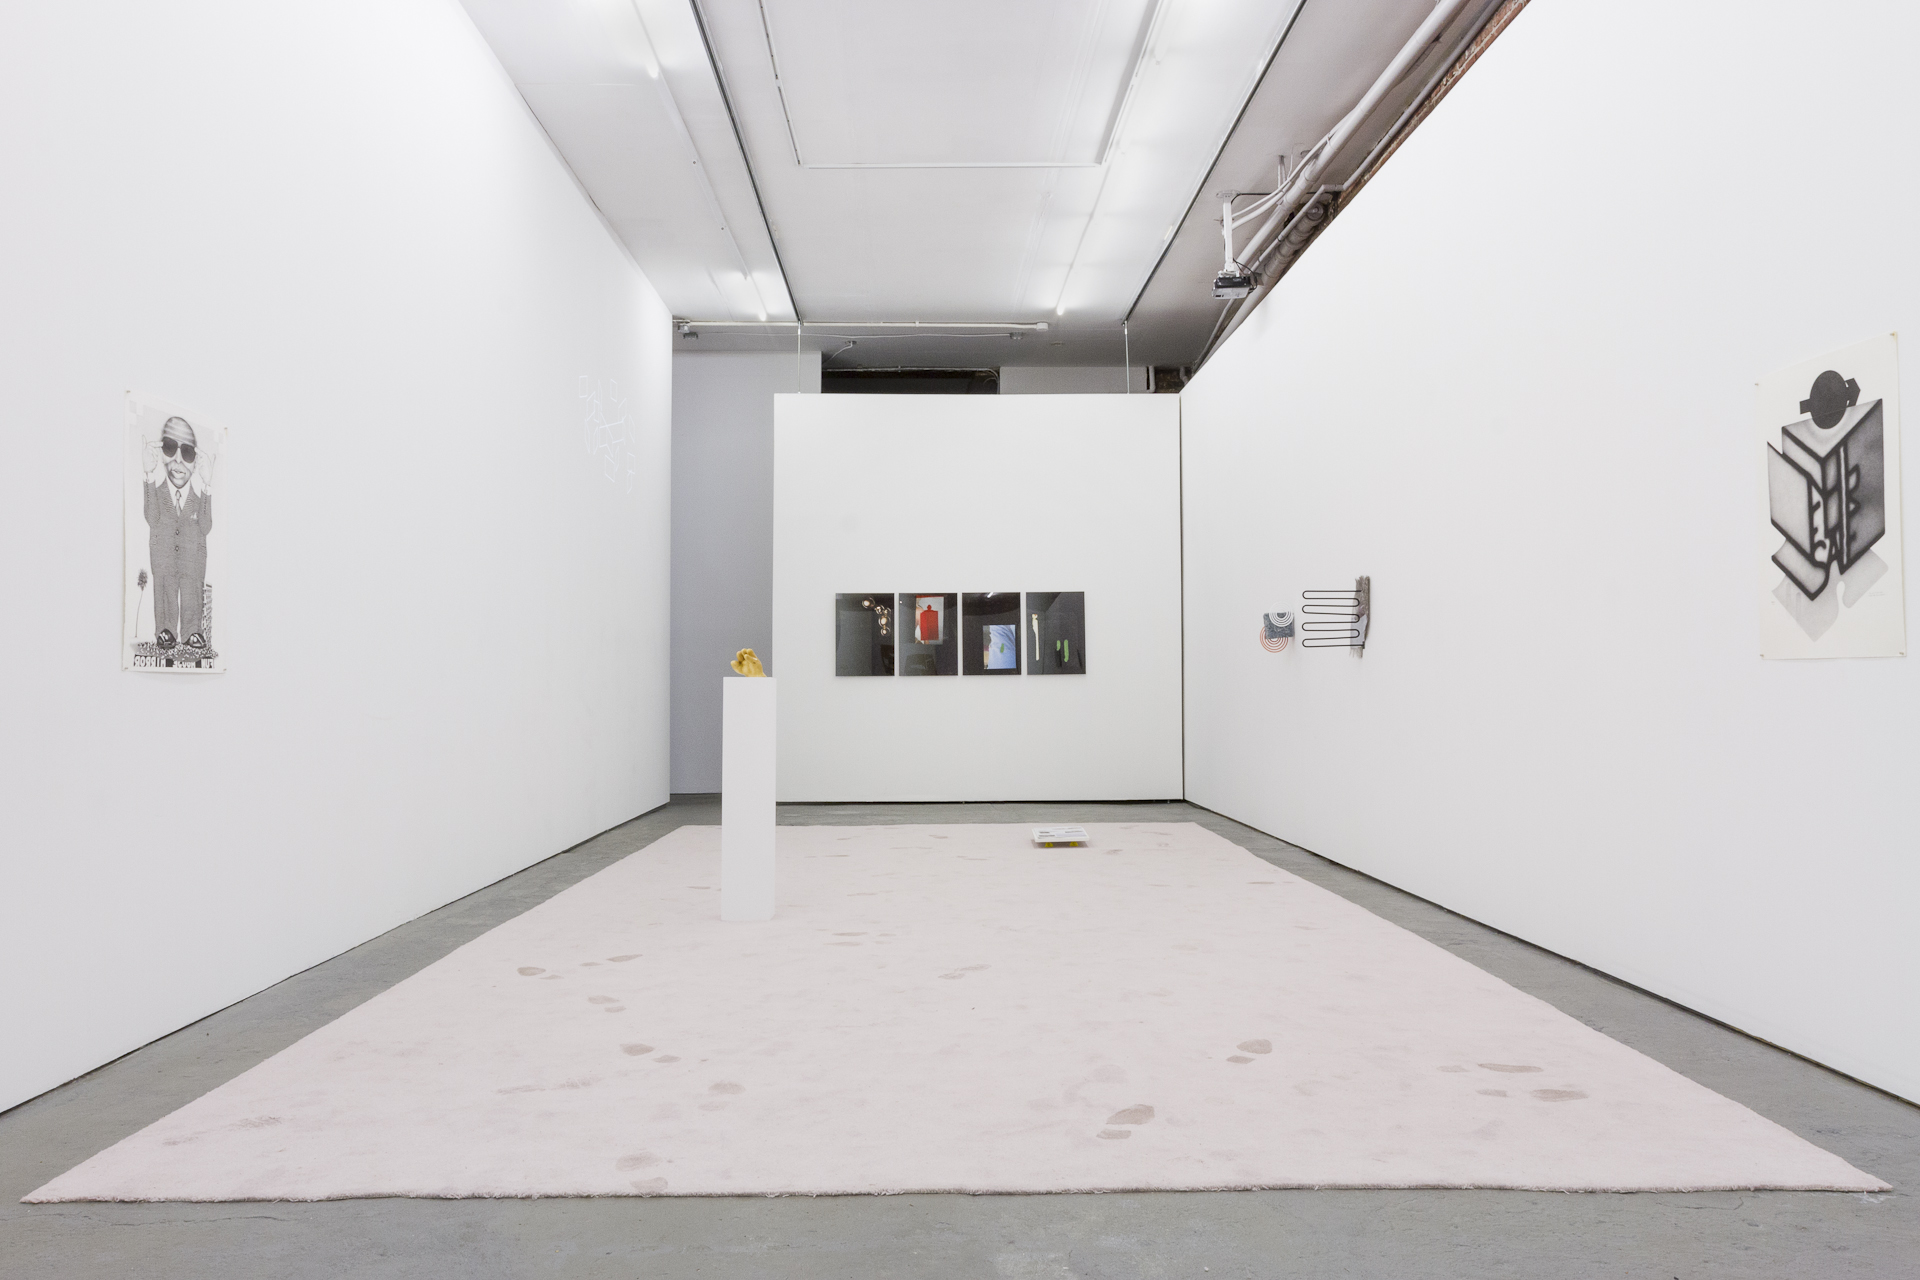 Installation view of The Corruption of Time's Dust curated by 2013-14 Curatorial Resident Julian Hou. Photo by Dennis Ha.